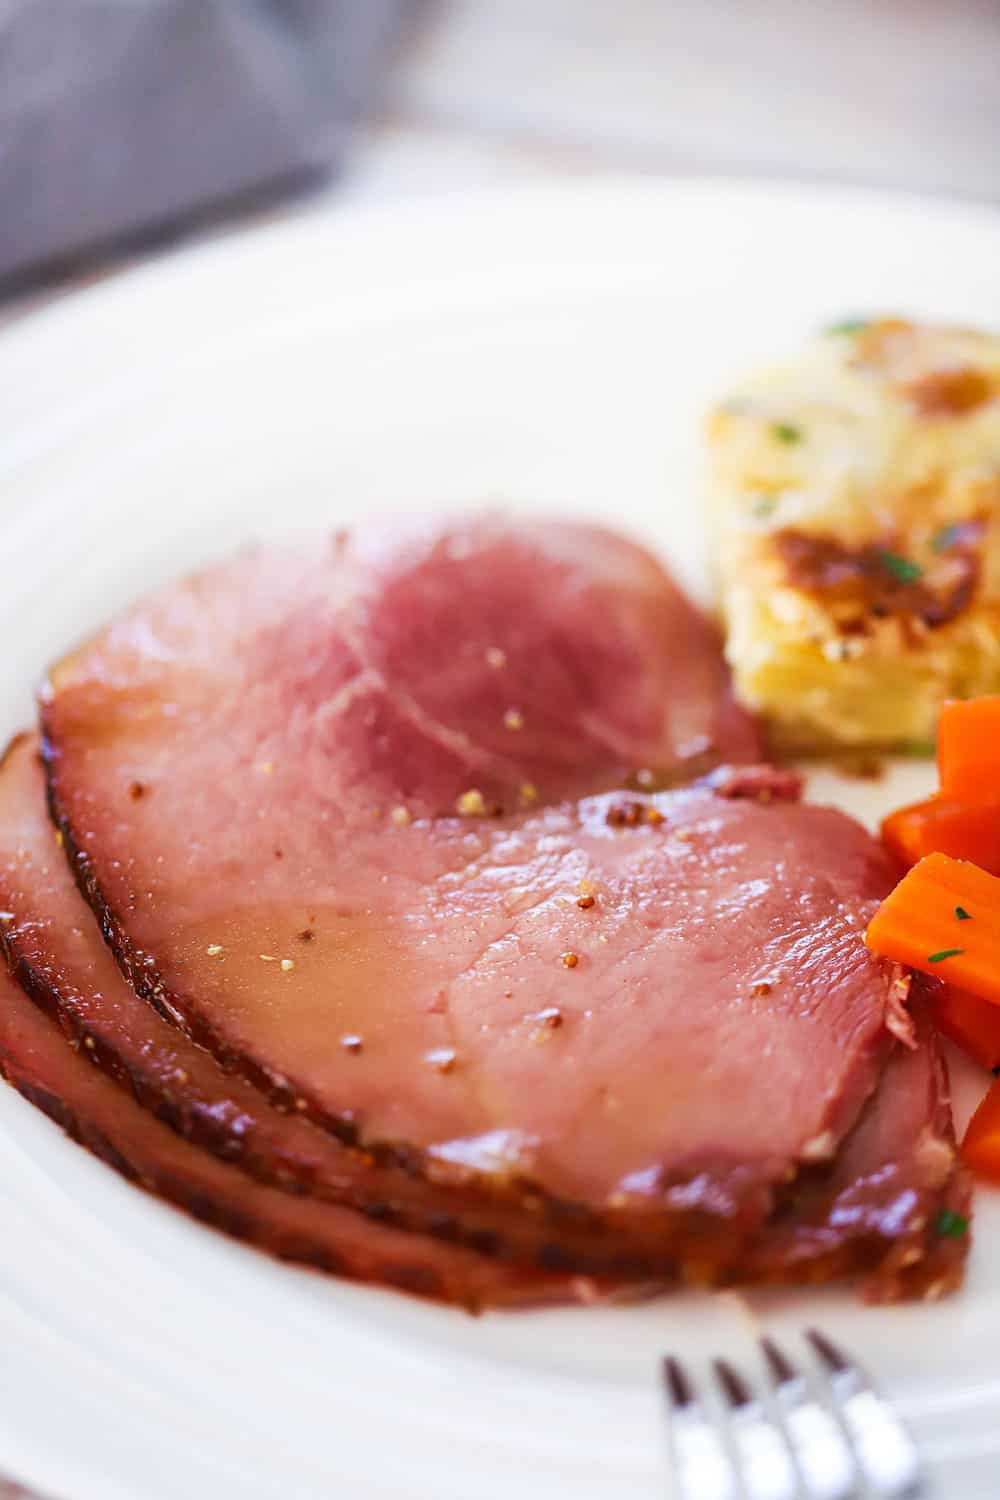 A white dinner plate filled with several slices of baked ham next to au gratin potatoes and braised carrots.